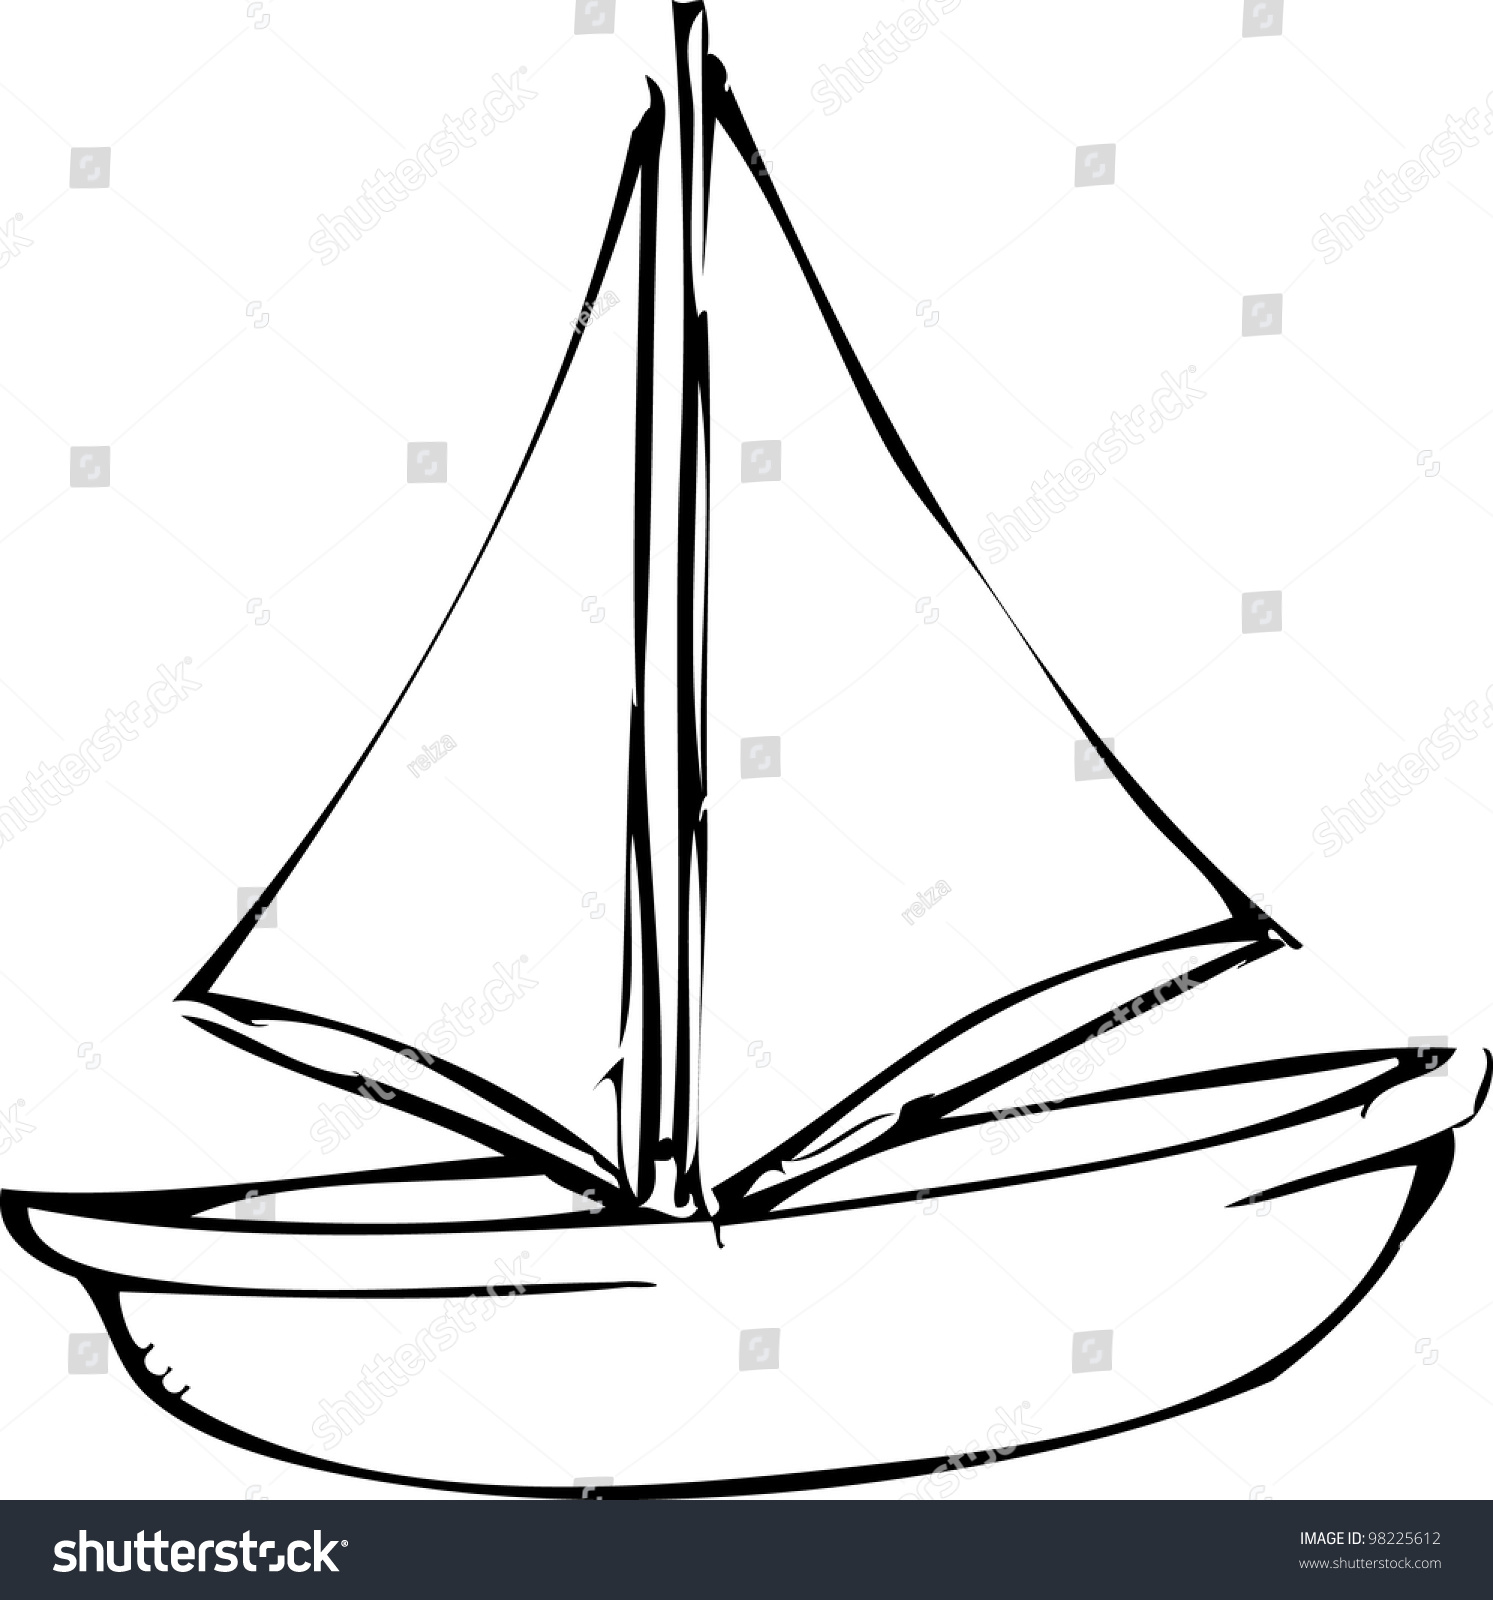 Simple Hand Drawing Sailing Boat Stock Vector 98225612 ...